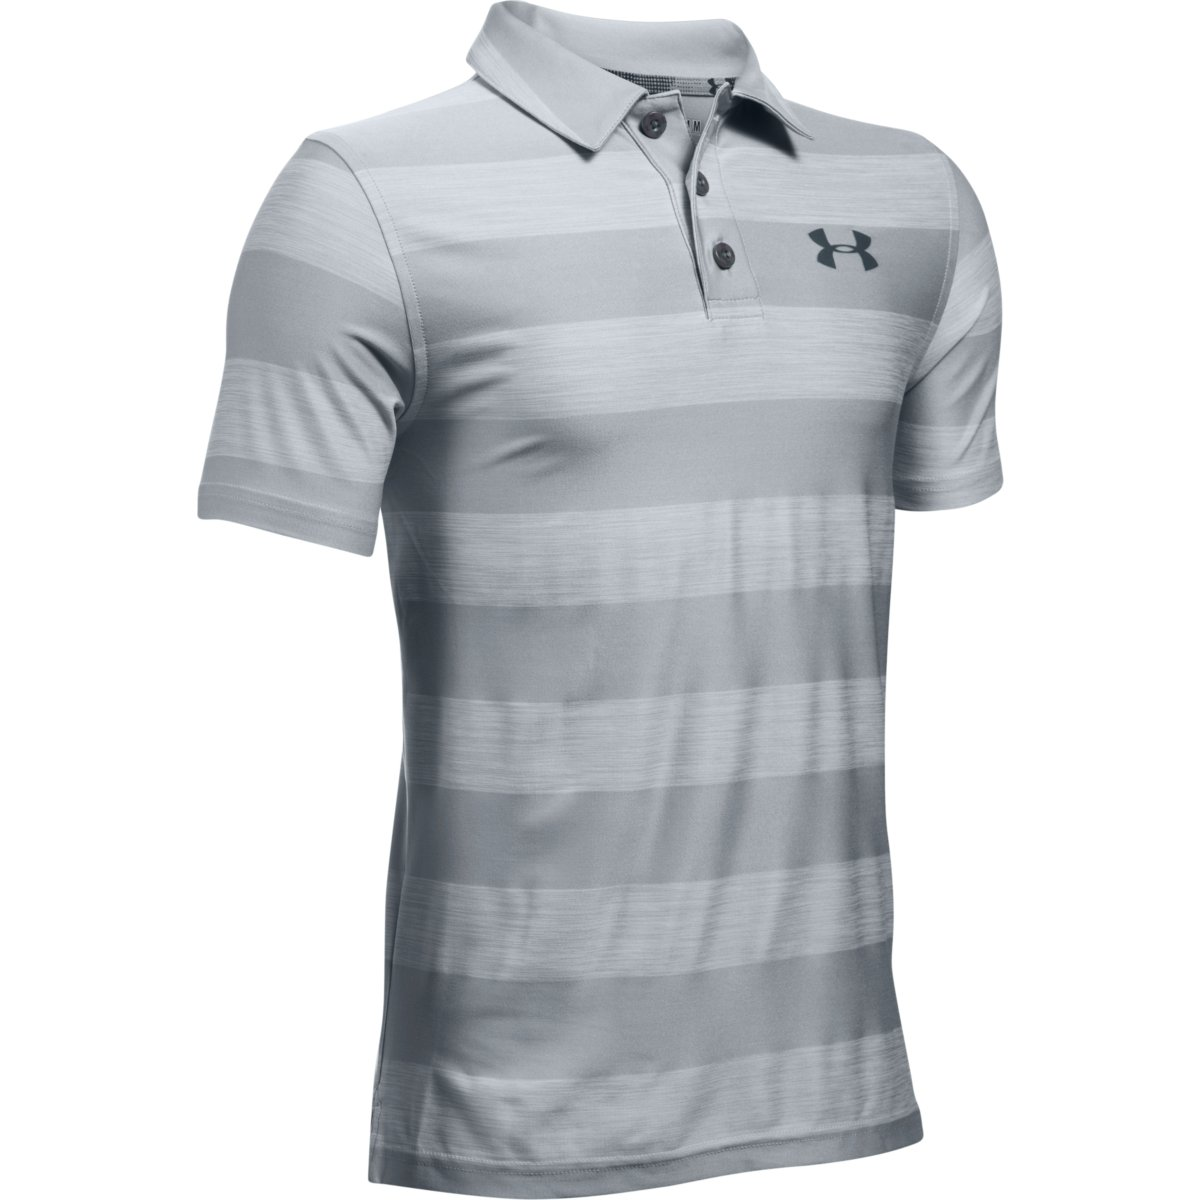 15b69bd3 Under Armour Golf Boys' Playoff Stripe Polo - Overcast Gray/Stealth Gray